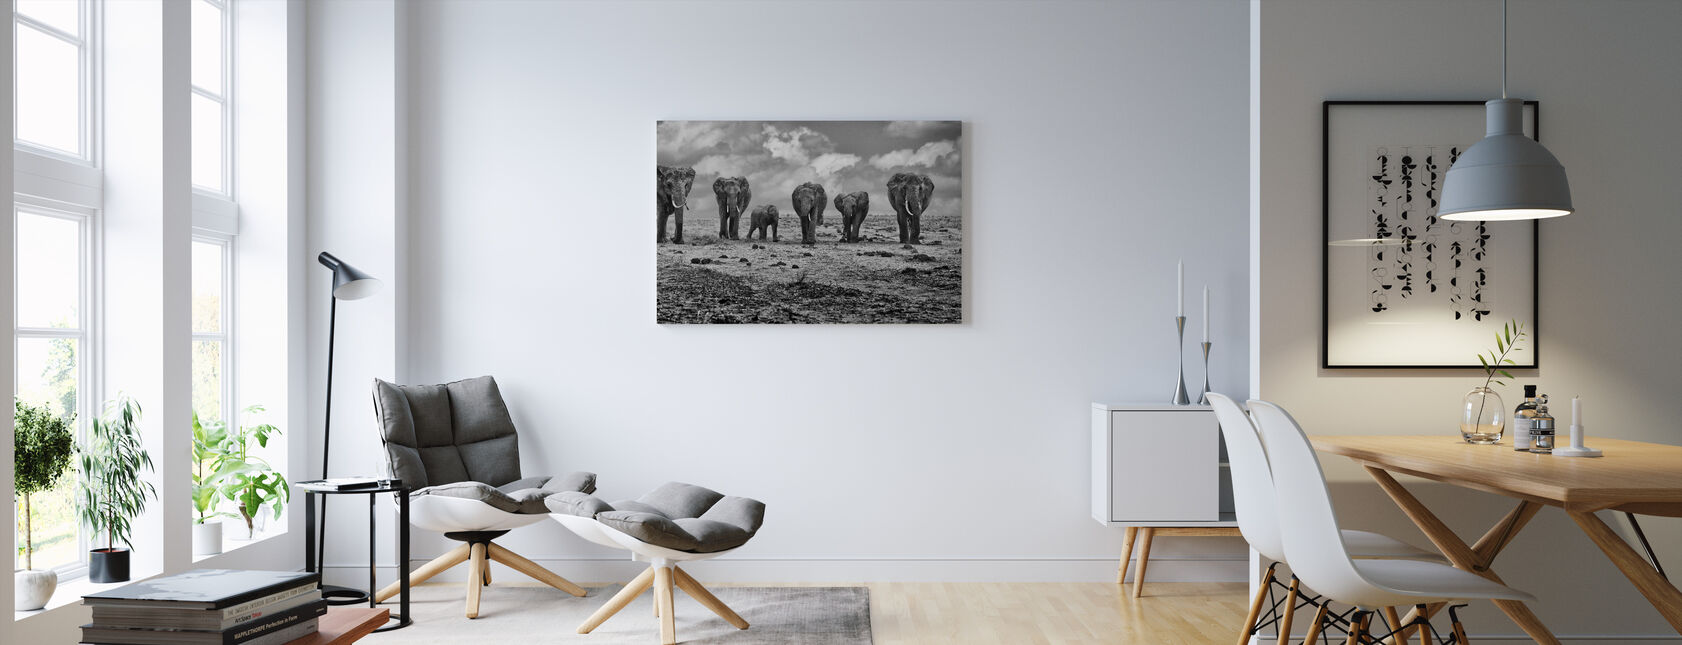 Grote Familie - Canvas print - Woonkamer